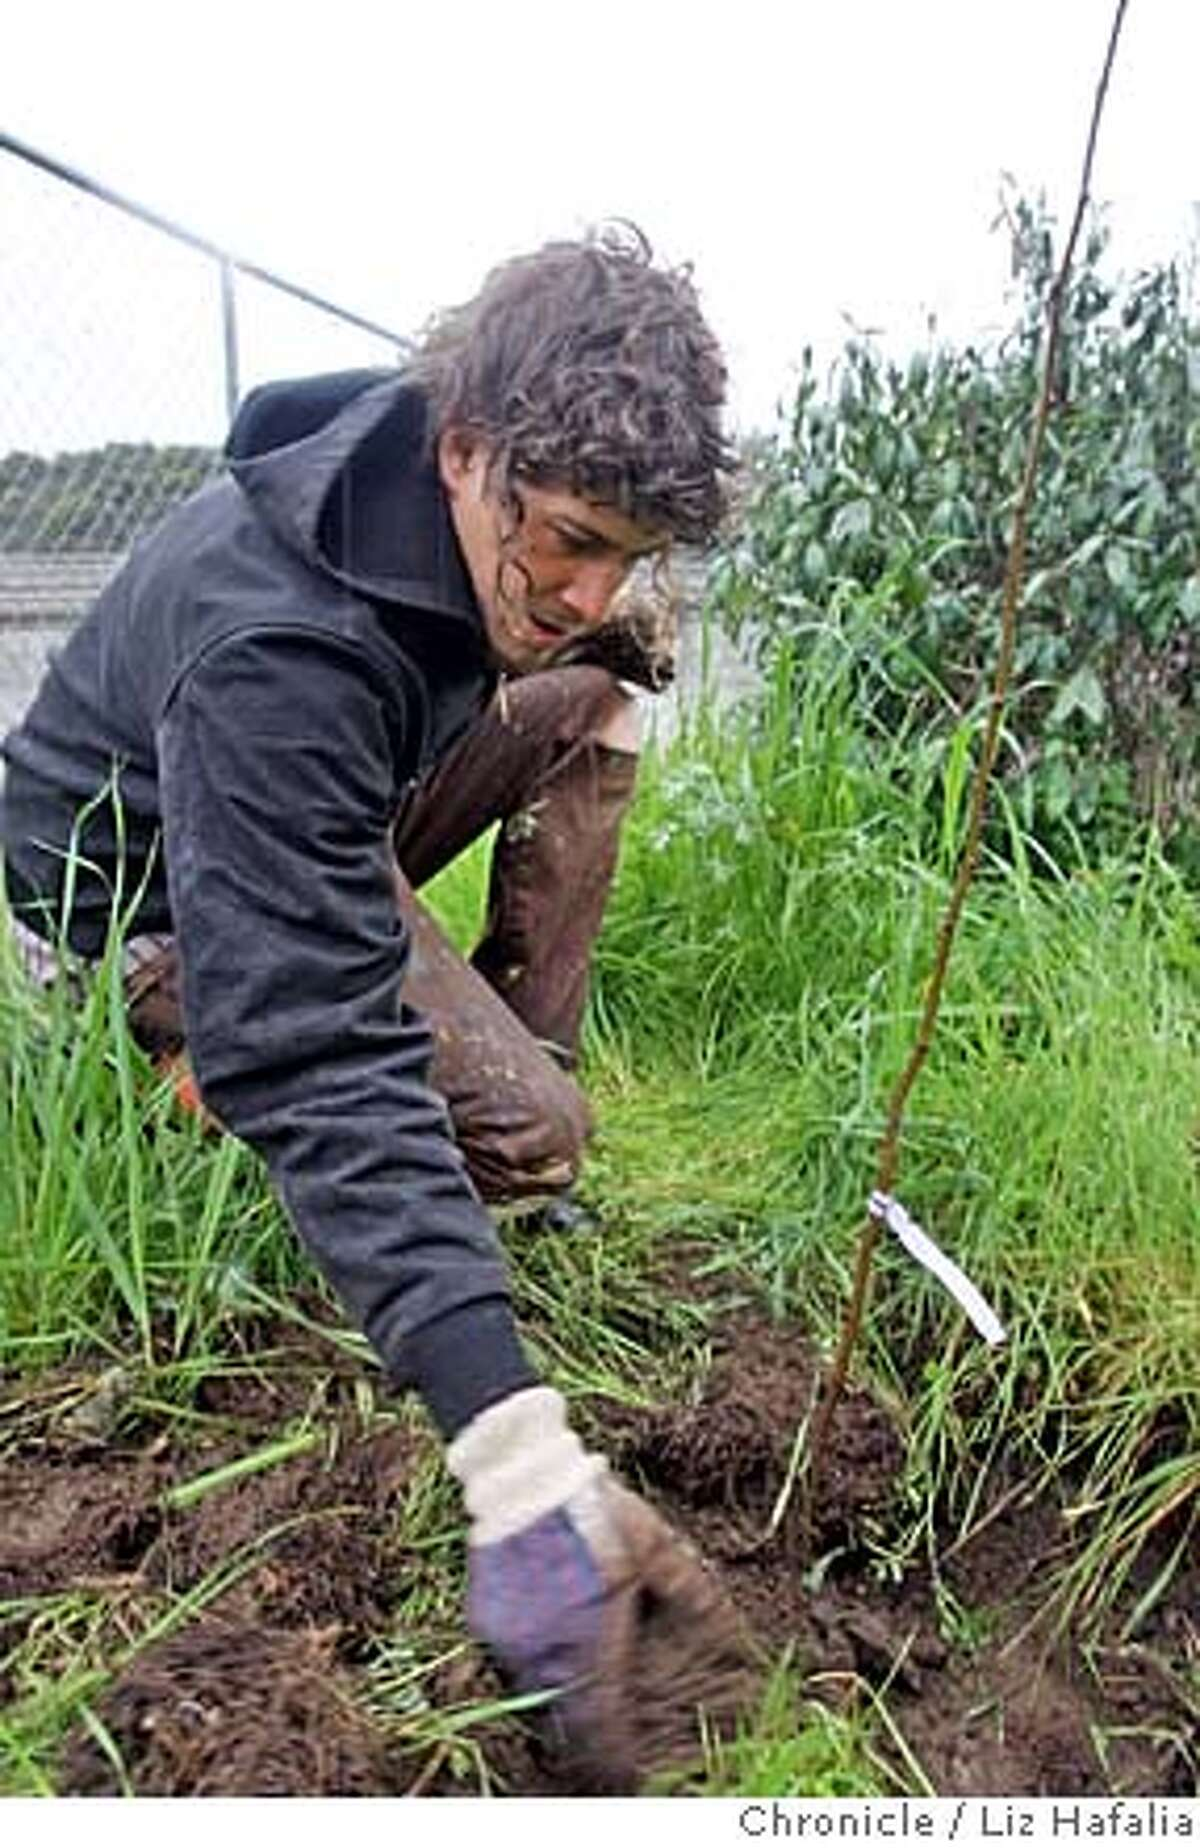 ###Live Caption:Antonio Roman-Alcala spearheaded a community effort to work on the Alemany Farm which was deserted for two years when SLUG ran out of funding. He is planting trees for windbreak on the property in San Francisco, Calif., on saturday, feb. 23, 2008. Photo by Liz Hafalia/San Francisco Chronicle###Caption History:Antonio Roman-Alcala spearheaded a community effort to work on the Alemany Farm which was deserted for two years when SLUG ran out of funding. He is planting trees for windbreak on the property in San Francisco, Calif., on 2/23/08. Photo by Liz Hafalia/San Francisco Chronicle###Notes:Antonio Roman-Alcala spearheaded a community effort to work on the Alemany Farm which was deserted for two years when SLUG ran out of funding. He is planting trees for windbreak on the property in San Francisco, Calif., on 2/23/08. Liz Hafalia/The Chro###Special Instructions:�2008, San Francisco Chronicle/ Liz Hafalia MANDATORY CREDIT FOR PHOTOG AND SAN FRANCISCO CHRONICLE. NO SALES- MAGS OUT.